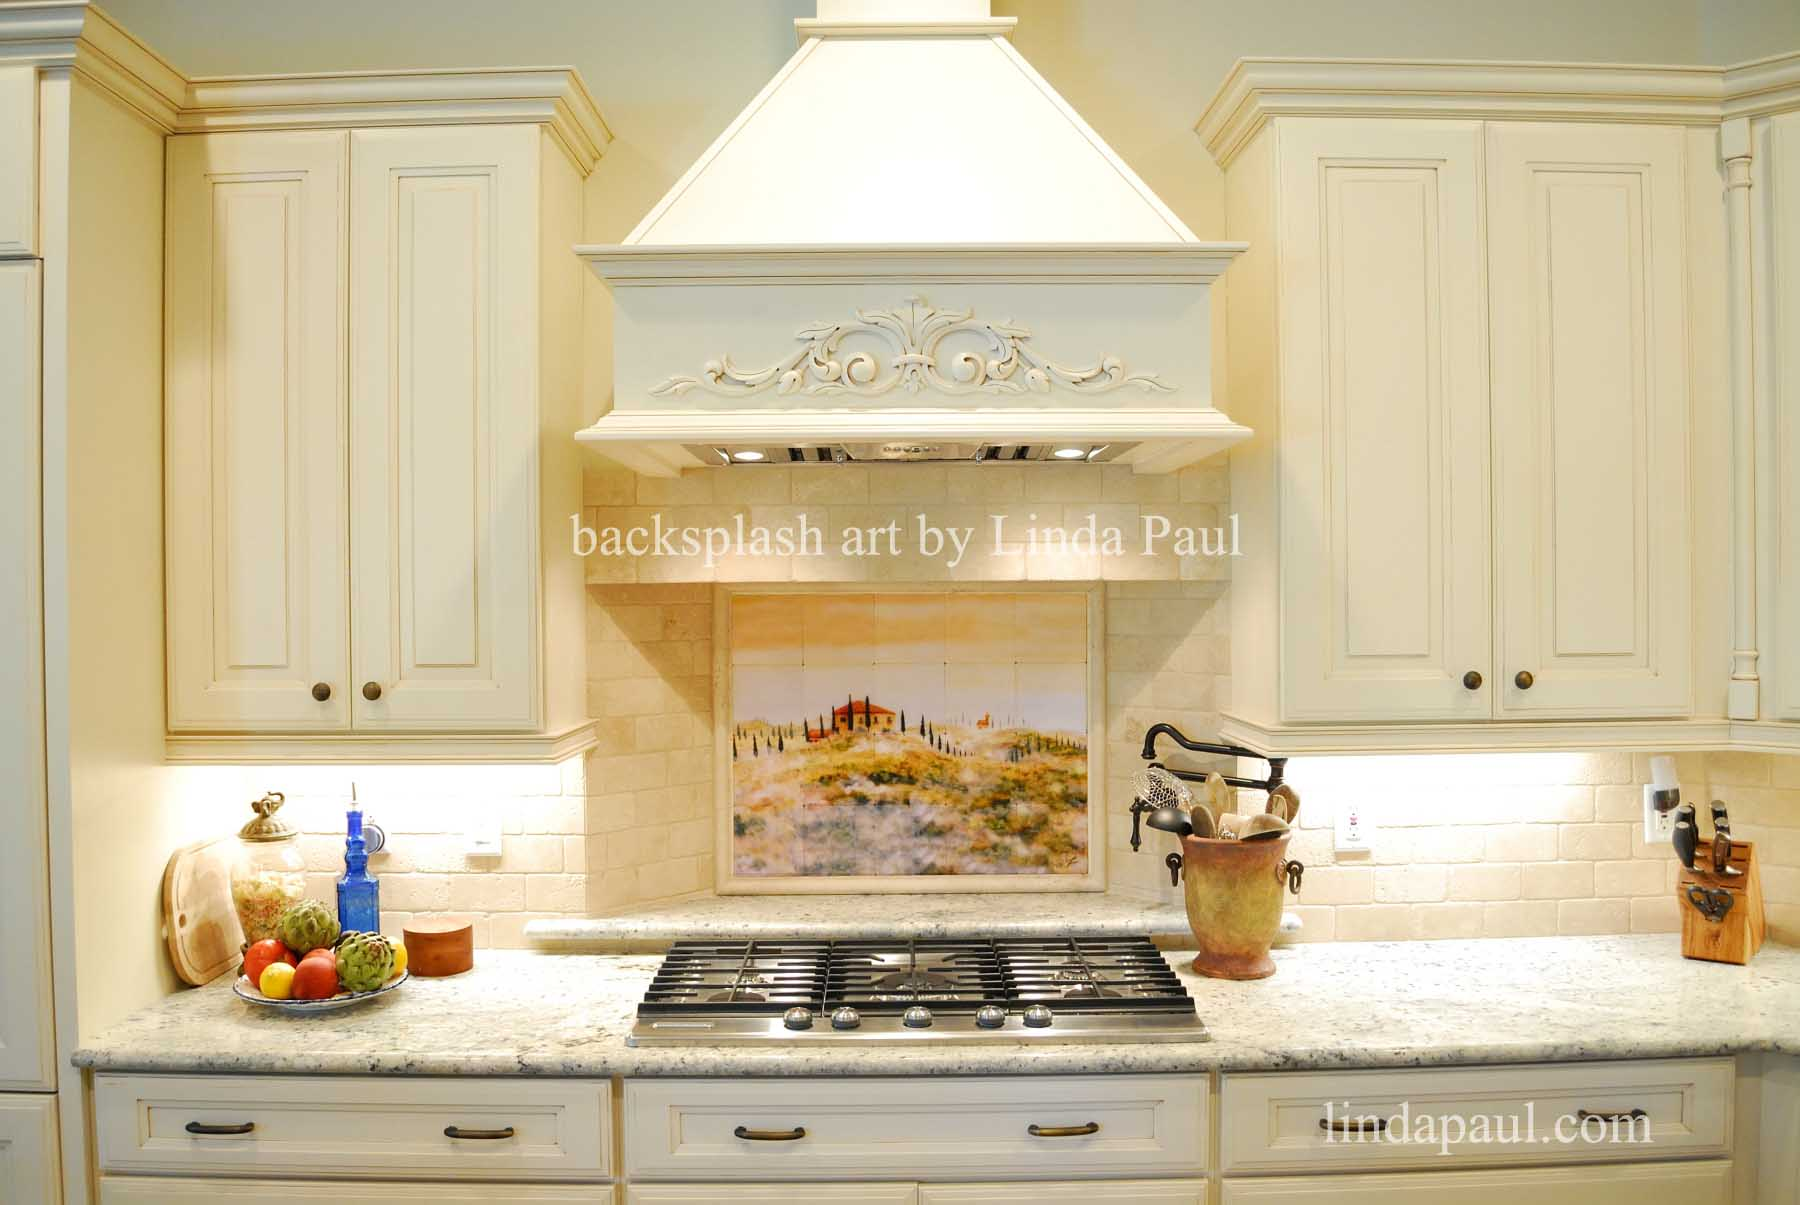 kitchen tile murals and bathroom showrooms tuscan backsplashes tuscany art tiles italian landscape backsplsh mural